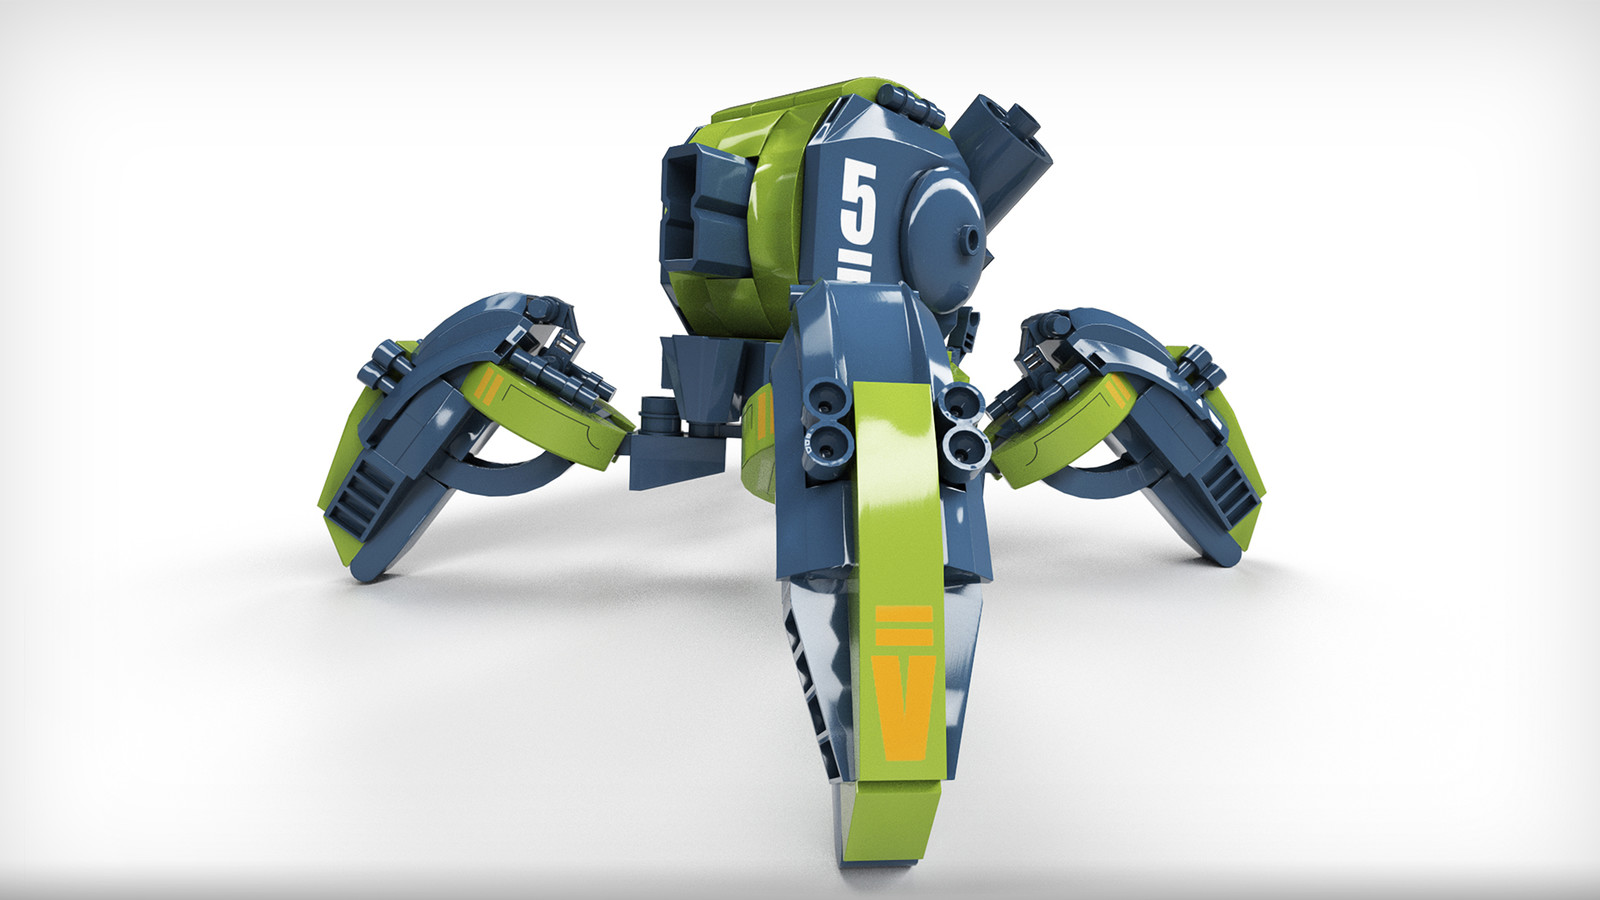 Lego Mecha - Toy version